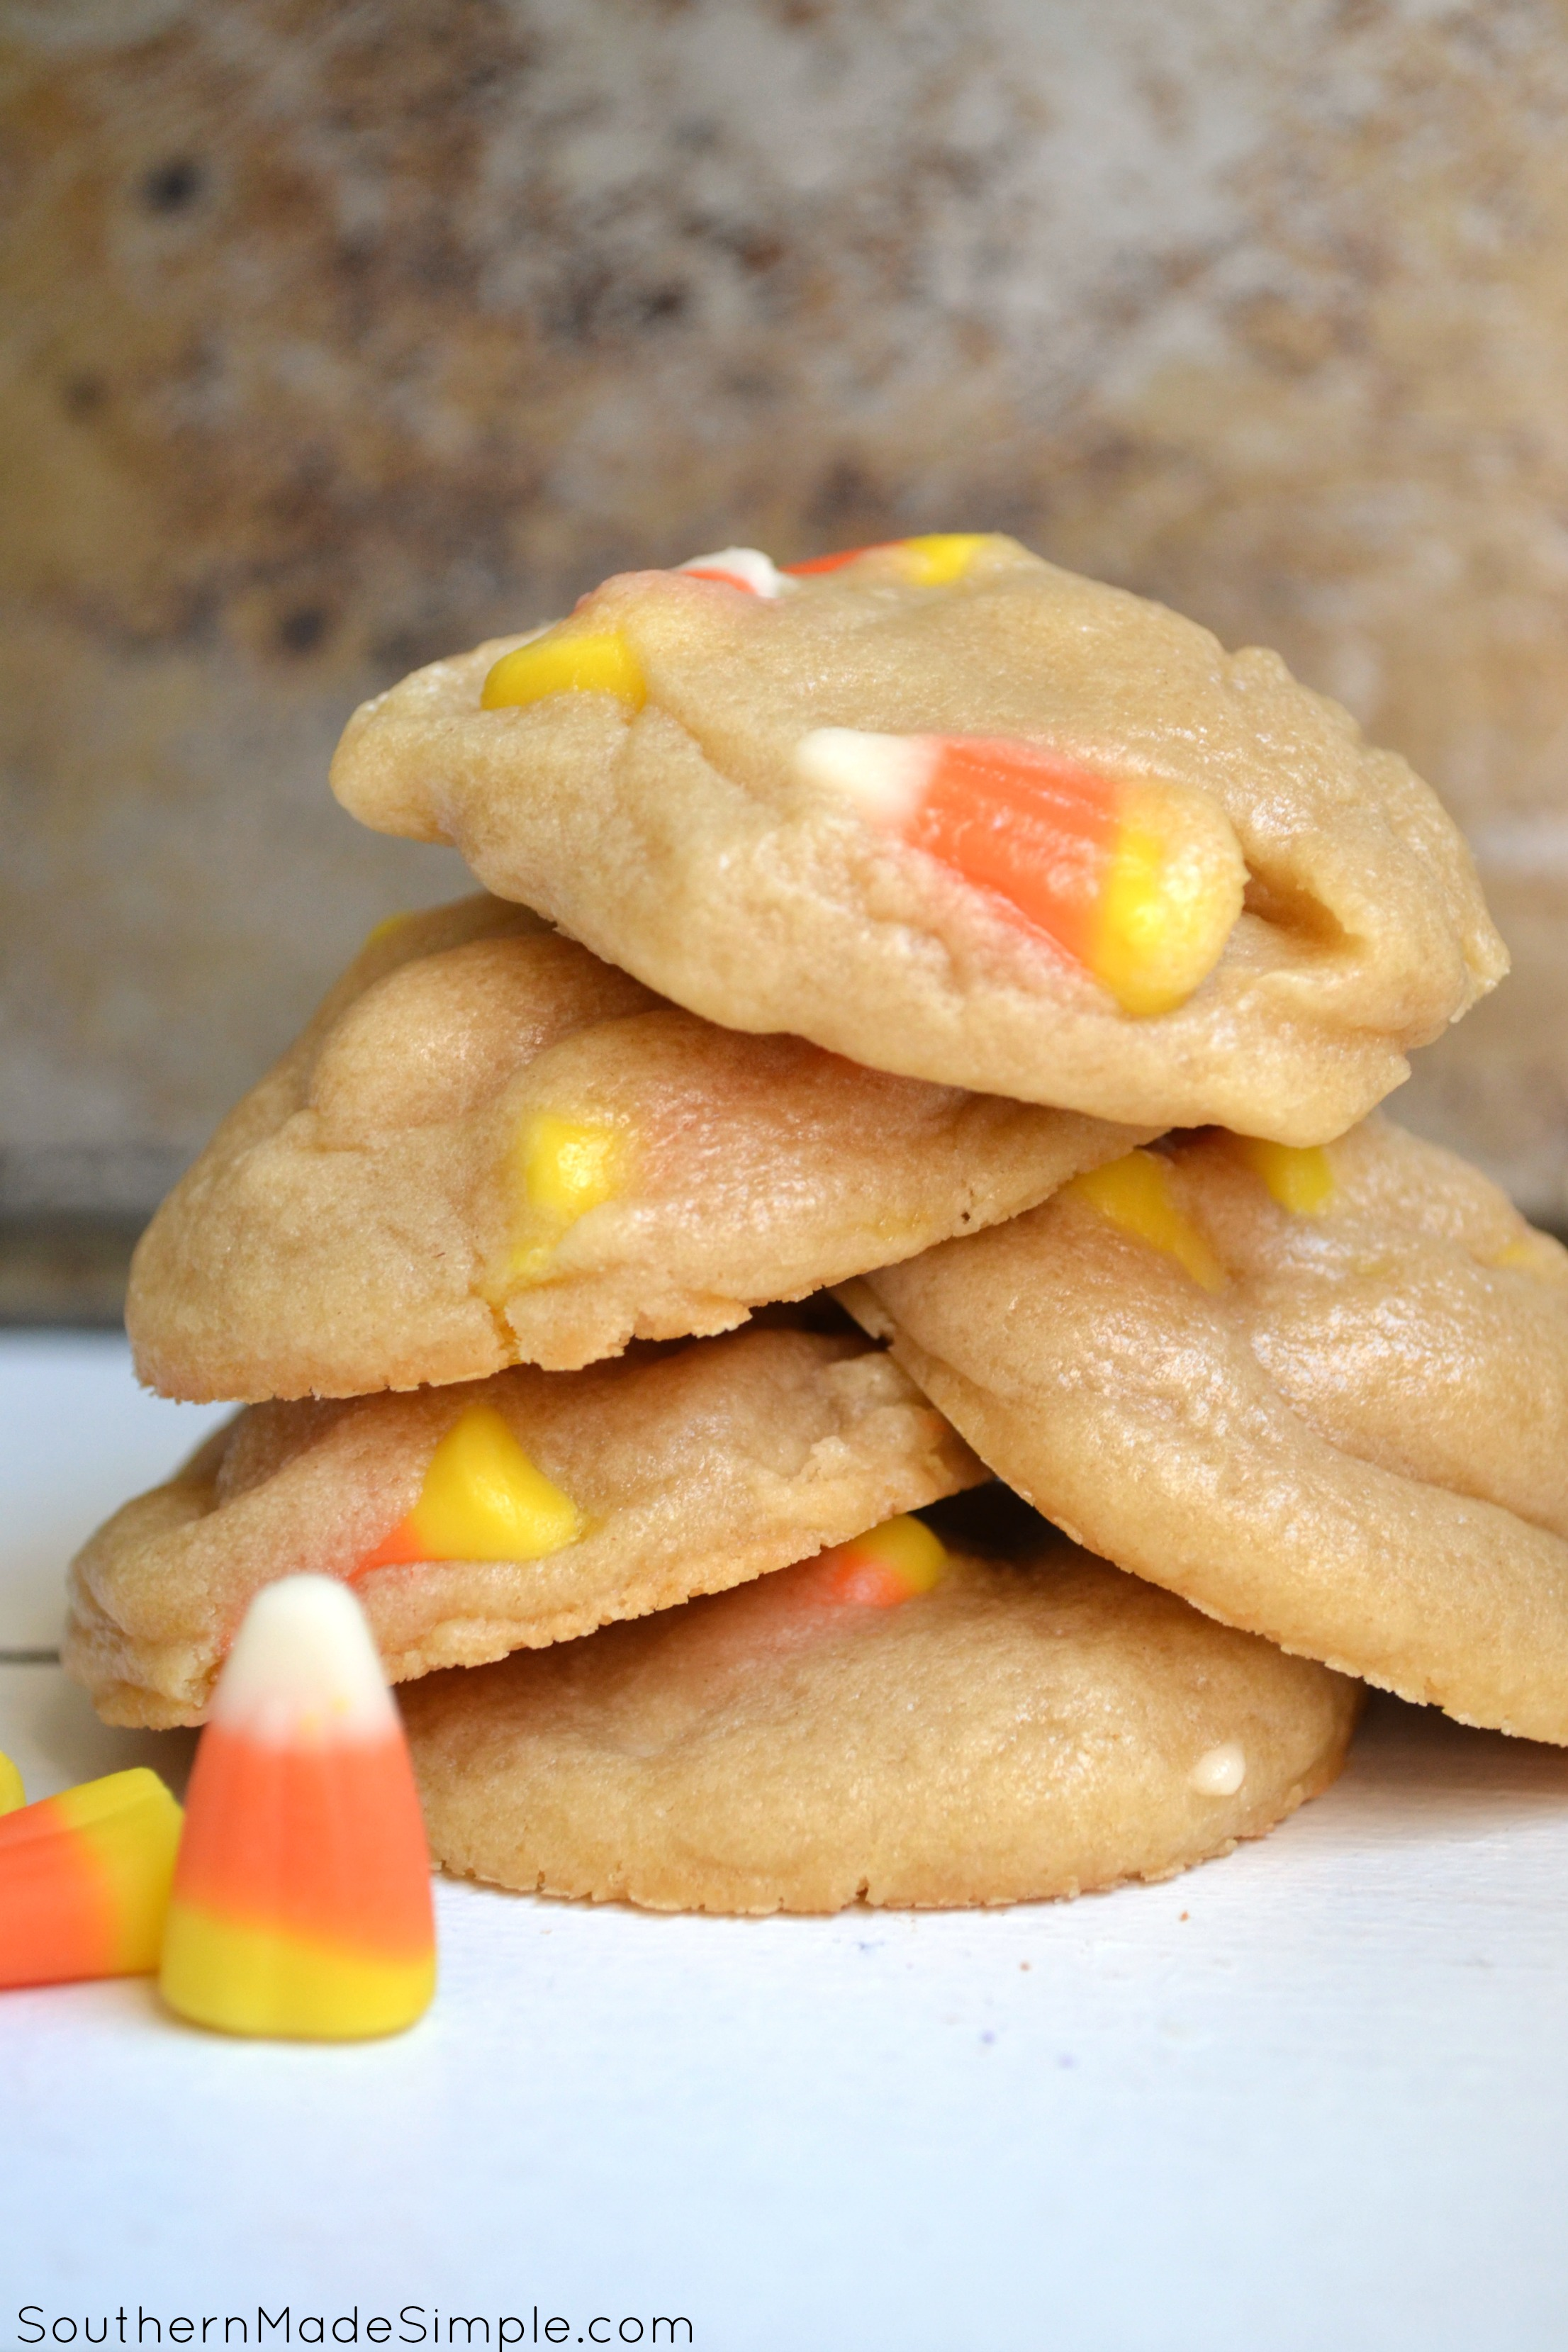 If you're a candy corn fan, you're definitely going to want to try this! This recipe makes the most delicious soft & chewy cookies - and they're perfect to make for a sweet Halloween treat!